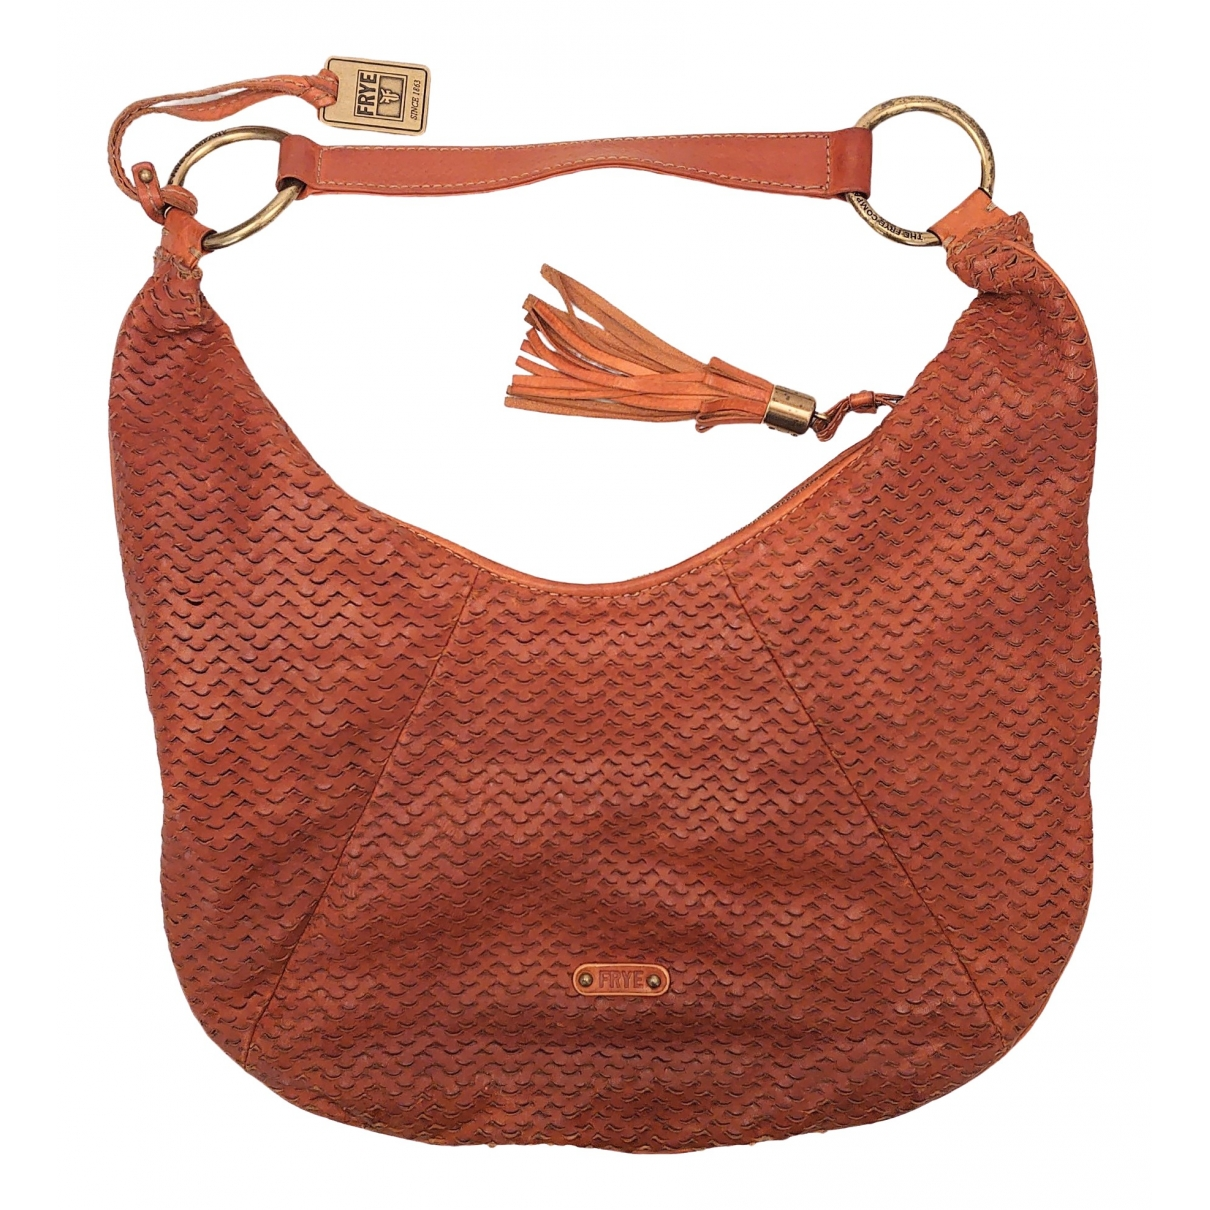 Frye \N Brown Leather handbag for Women \N